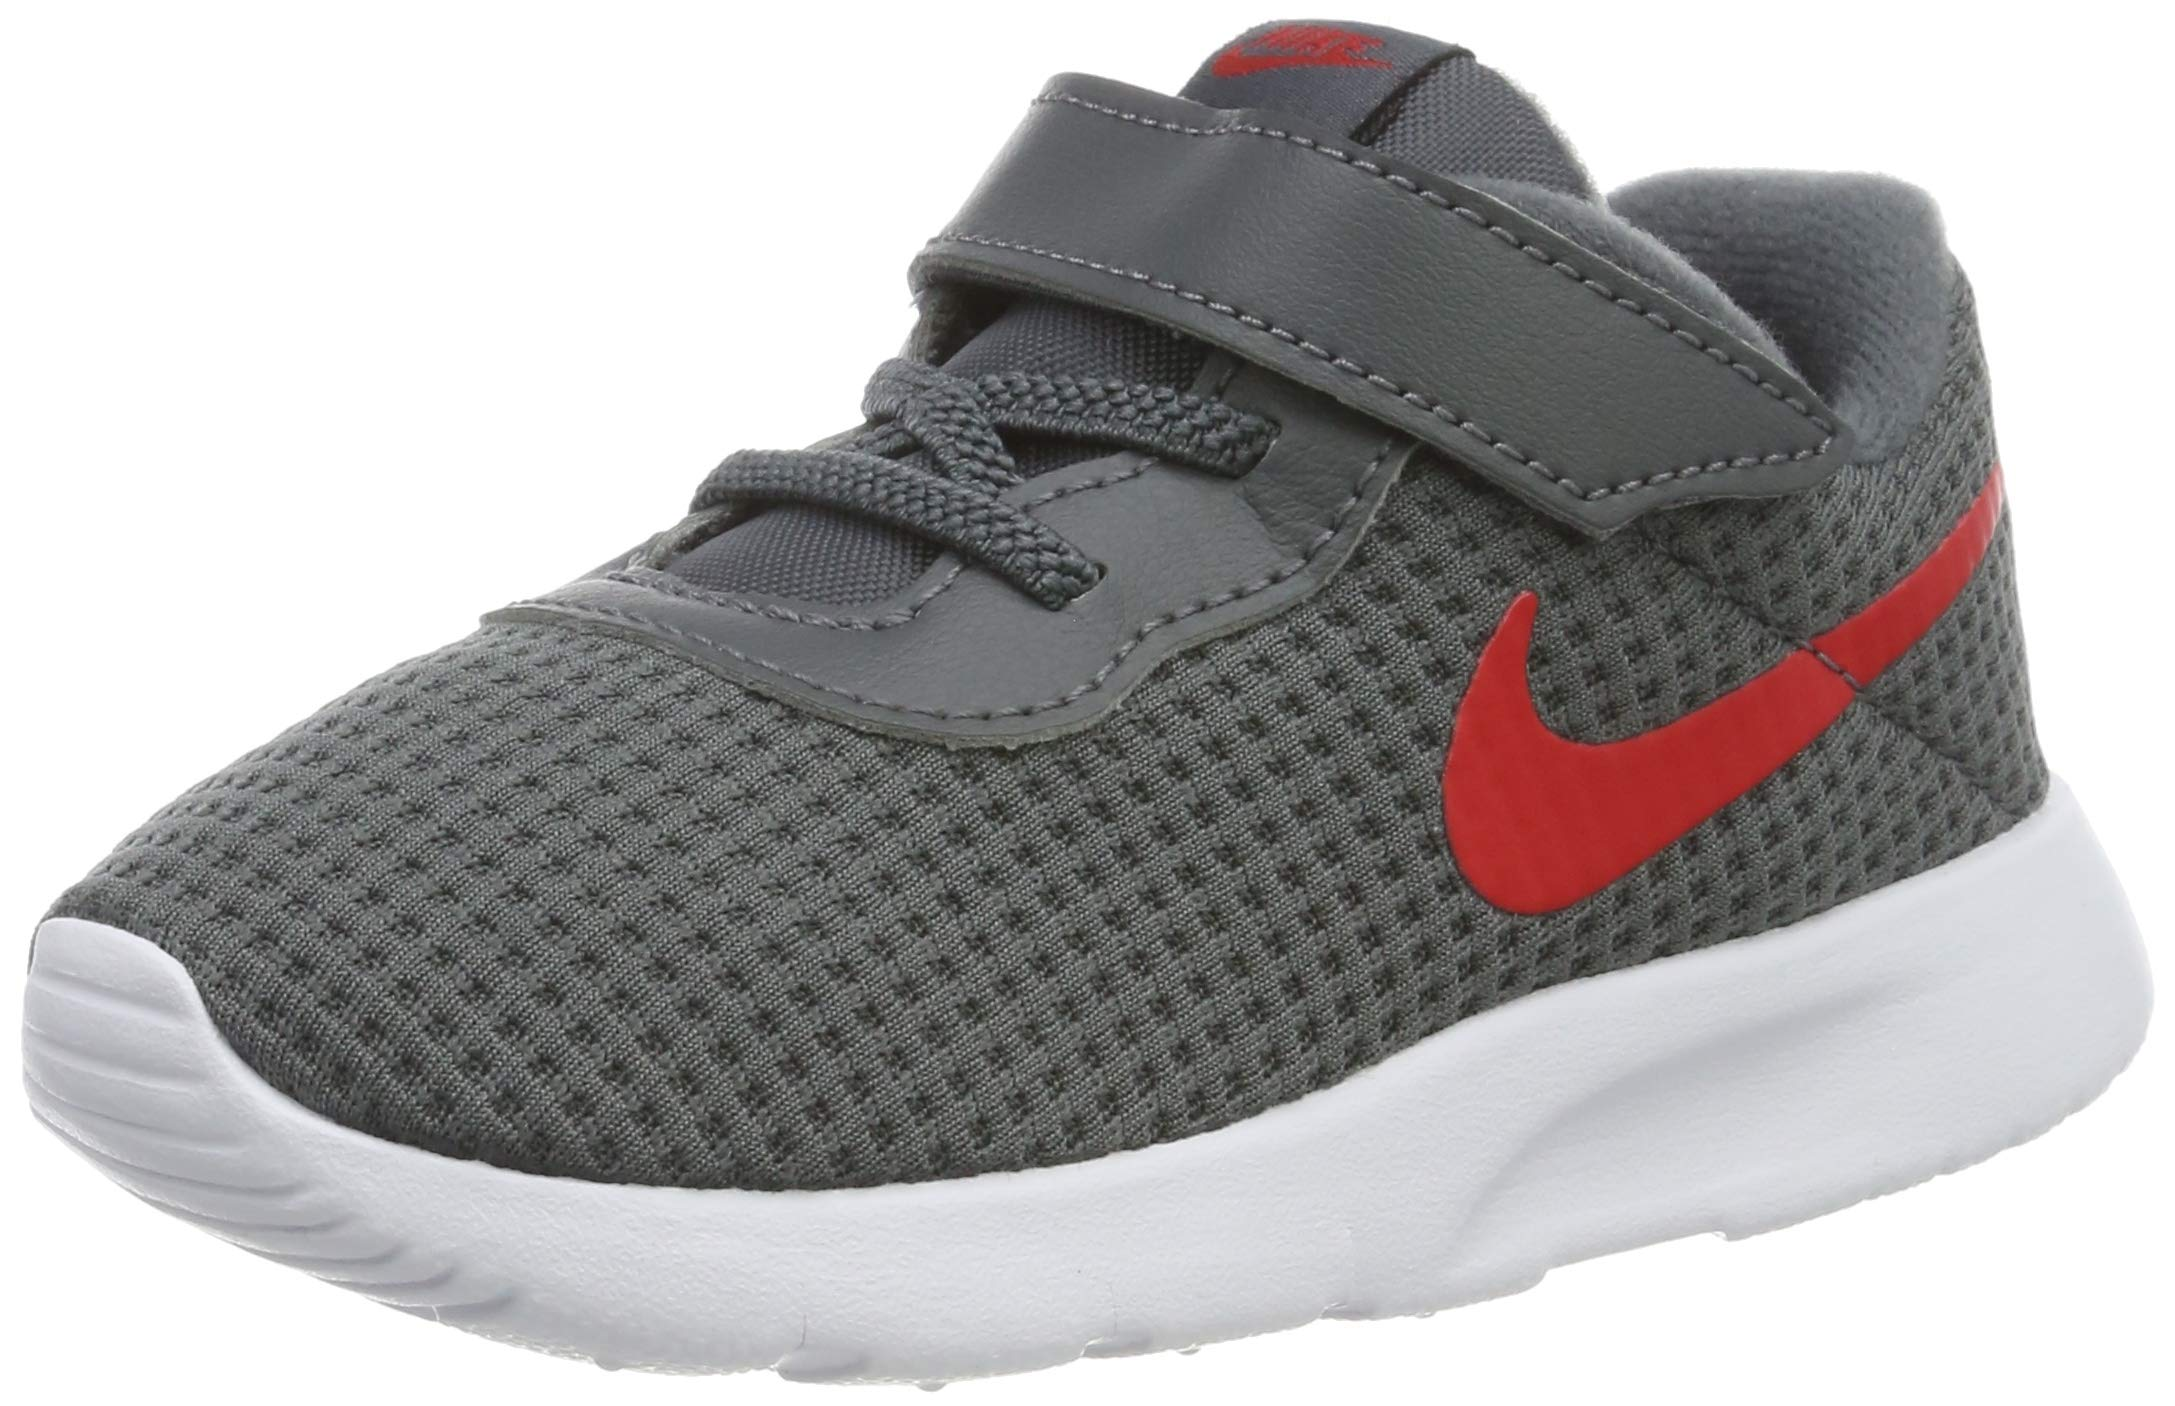 Nike Kid's Tanjun Running Shoe (7 M US Toddler, Dark Grey/University Red/White)